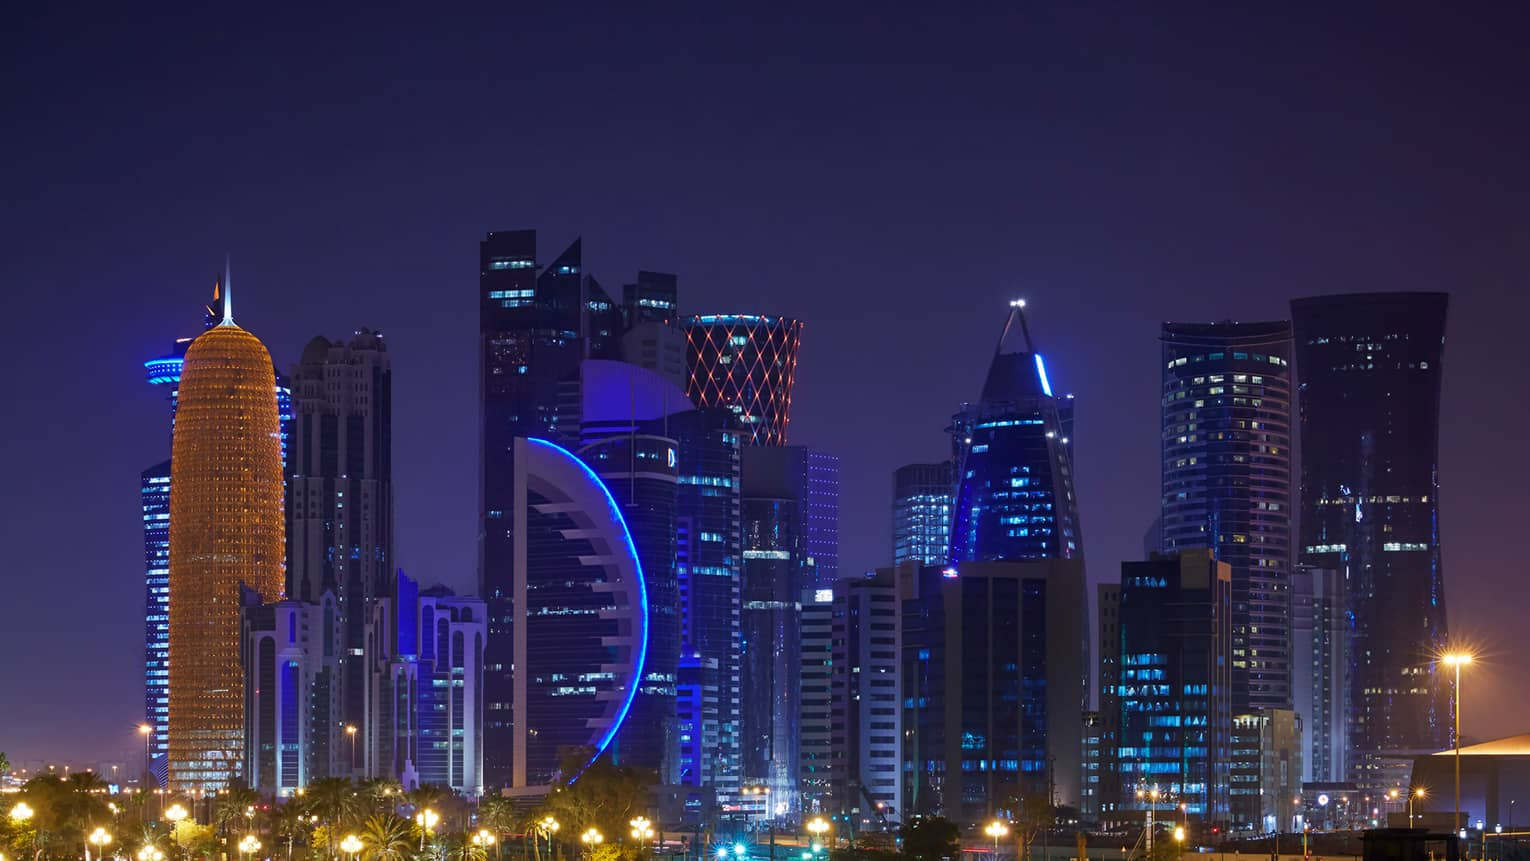 Doha skyline at night with blue lights, lit skyscraper windows